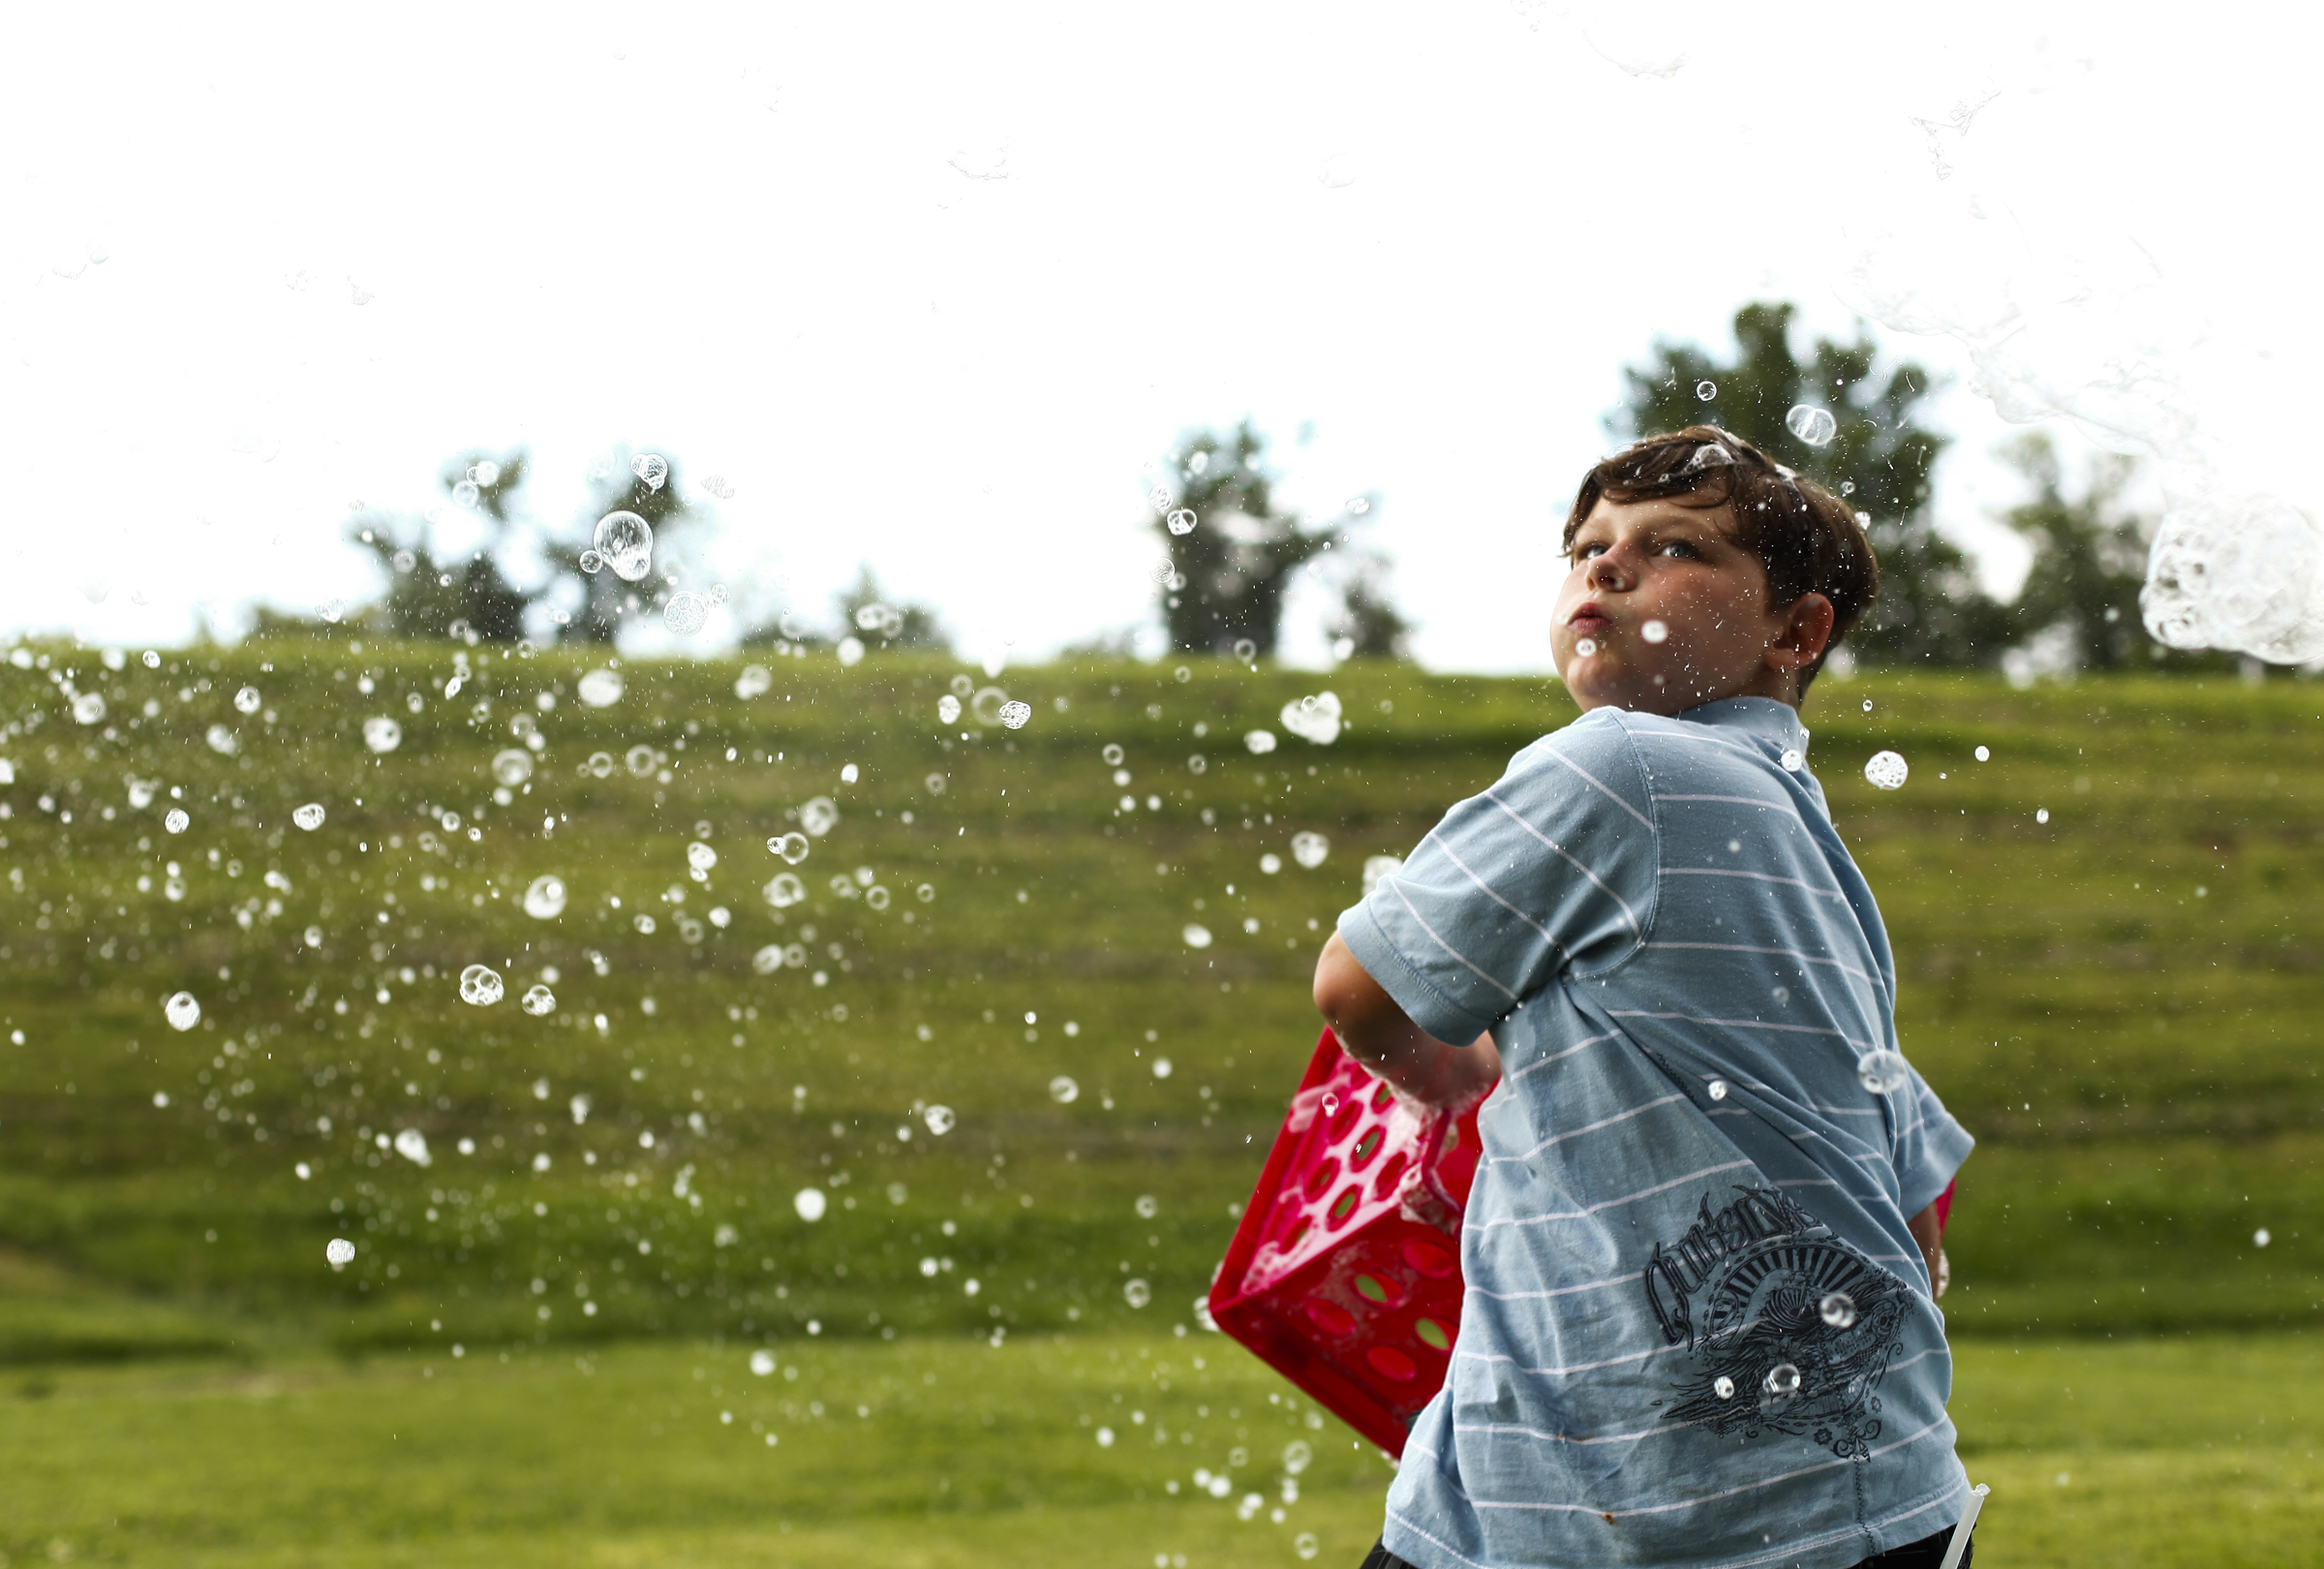 JT Powell, 10 of Uniontown, Ky., forms bubbles with a crate.